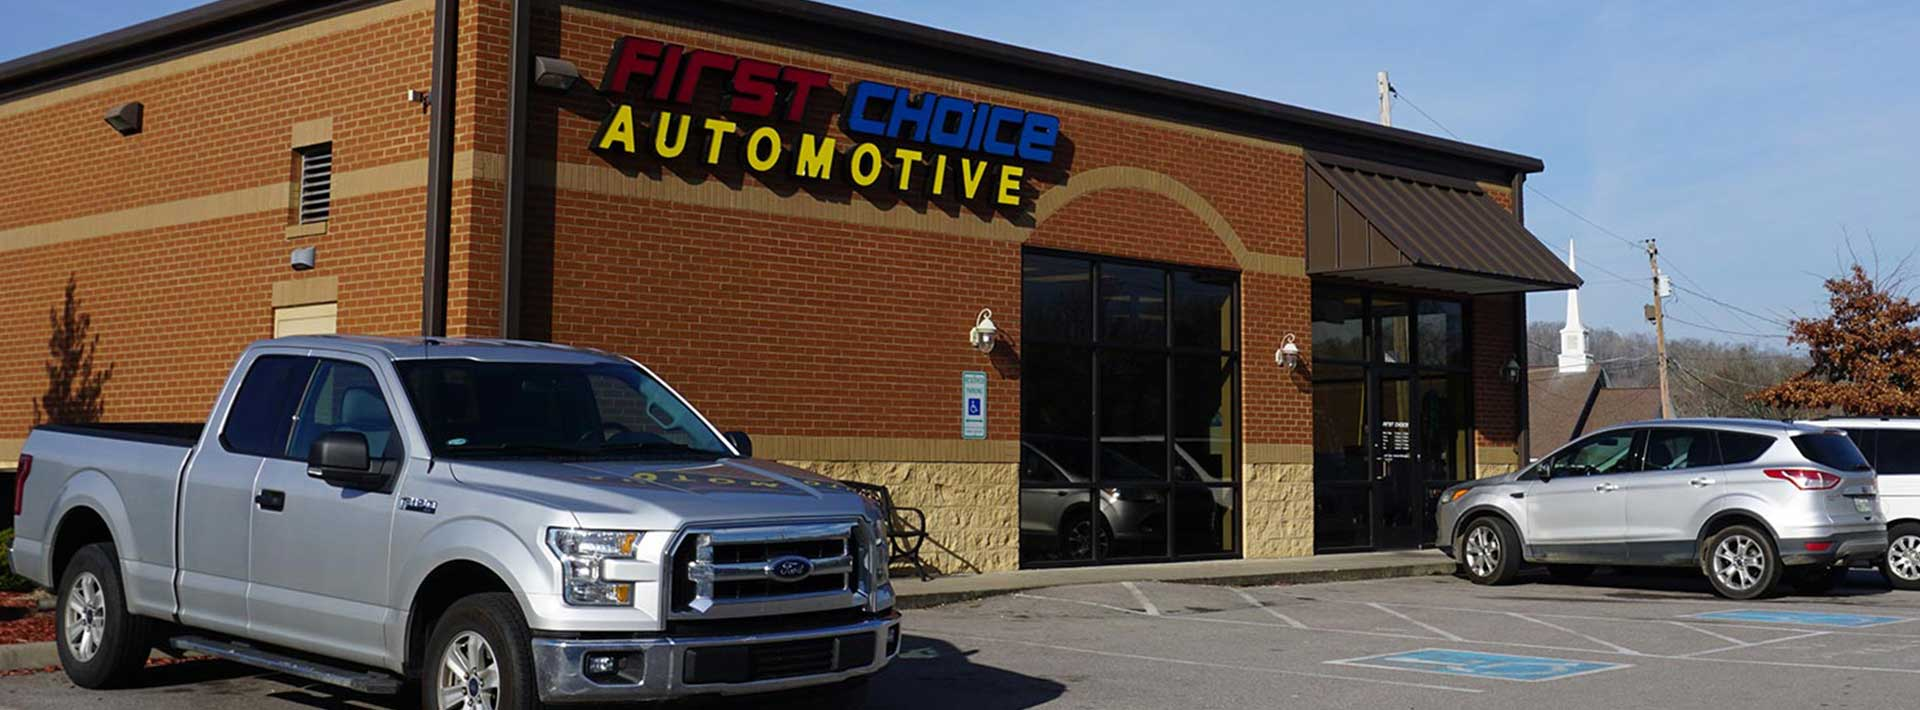 First Choice Auto Solway Shop